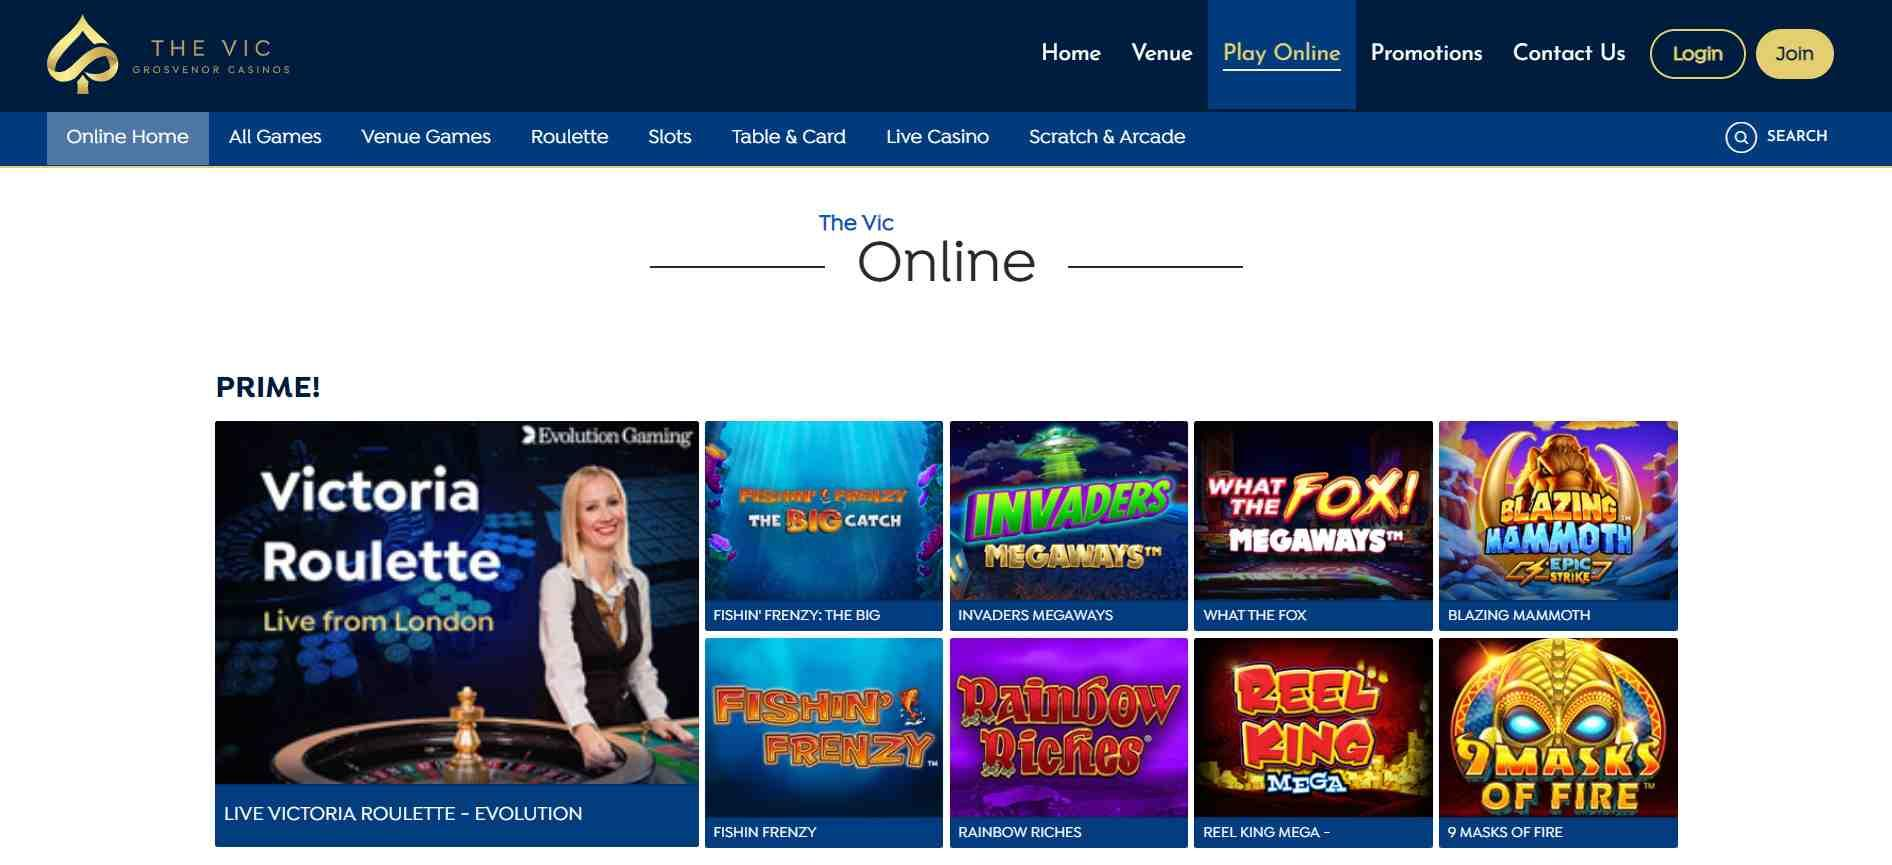 The Vic Casino Home Page